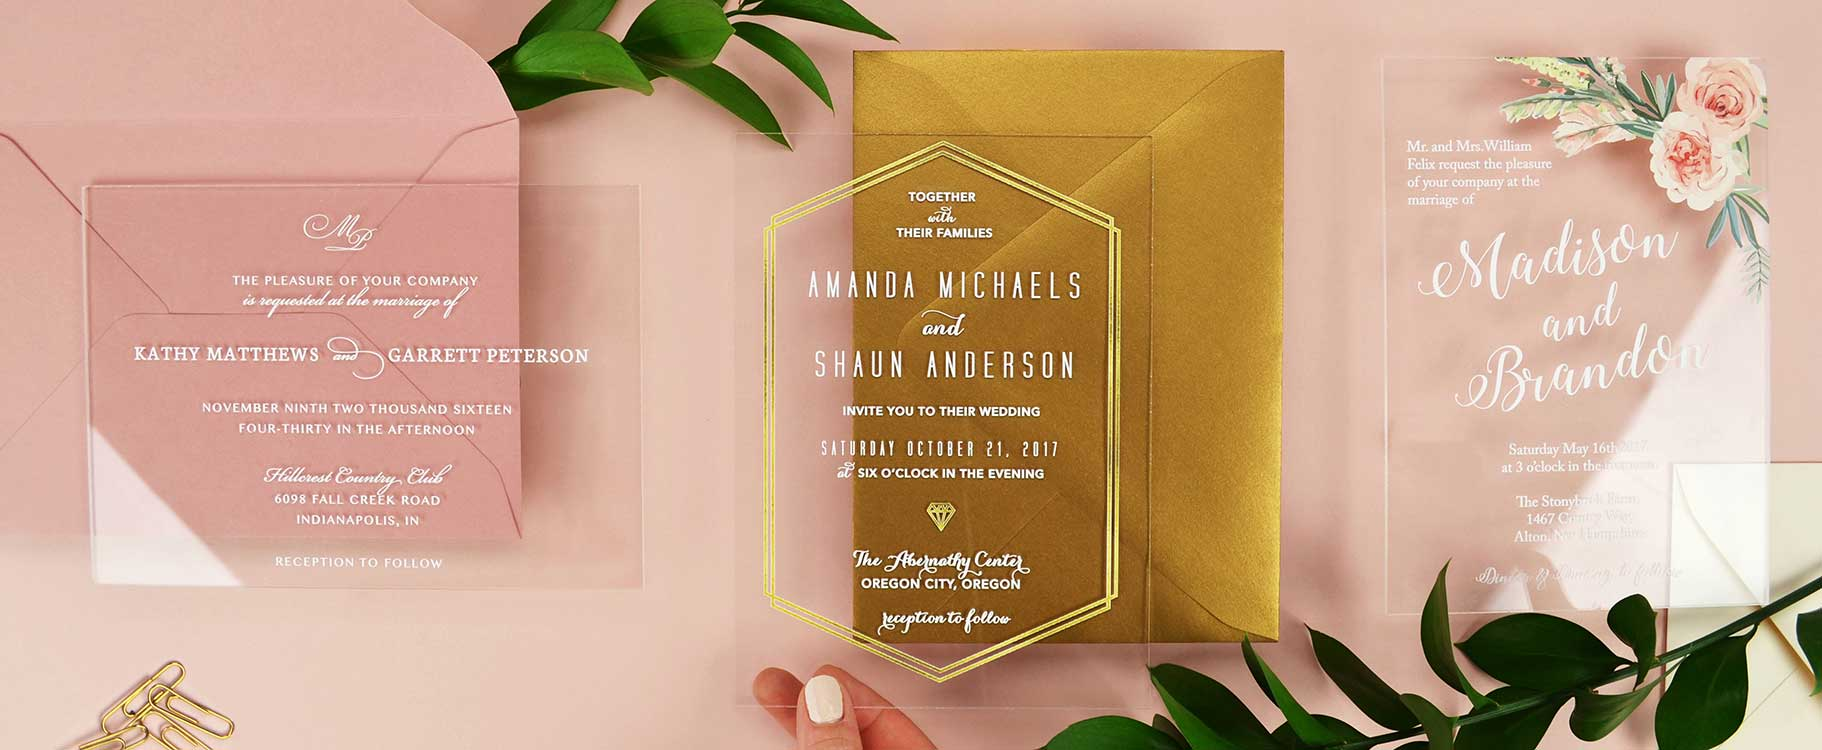 Acrylic Wedding Invitations | Cards and Pockets